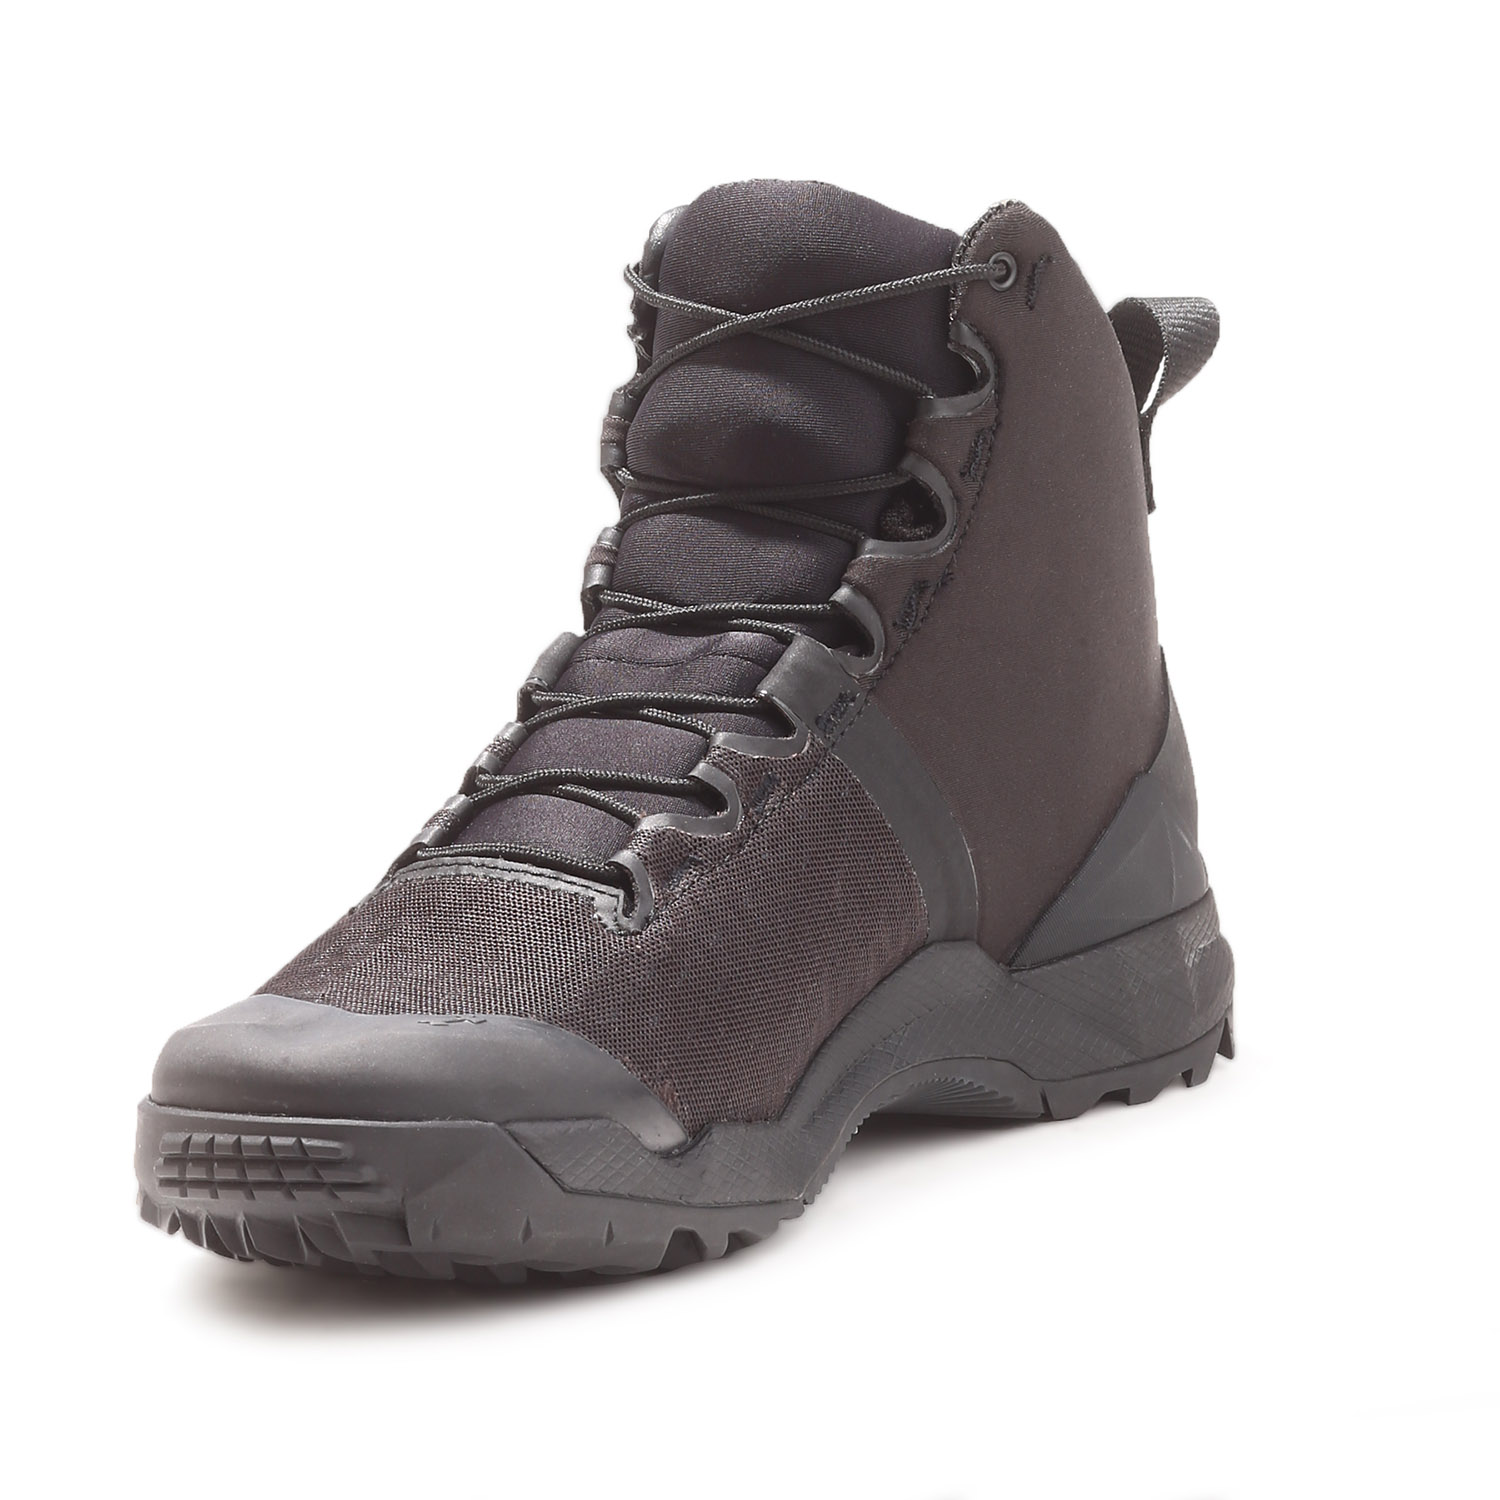 Under Armour 7 Quot Infil Gtx Waterproof Boot